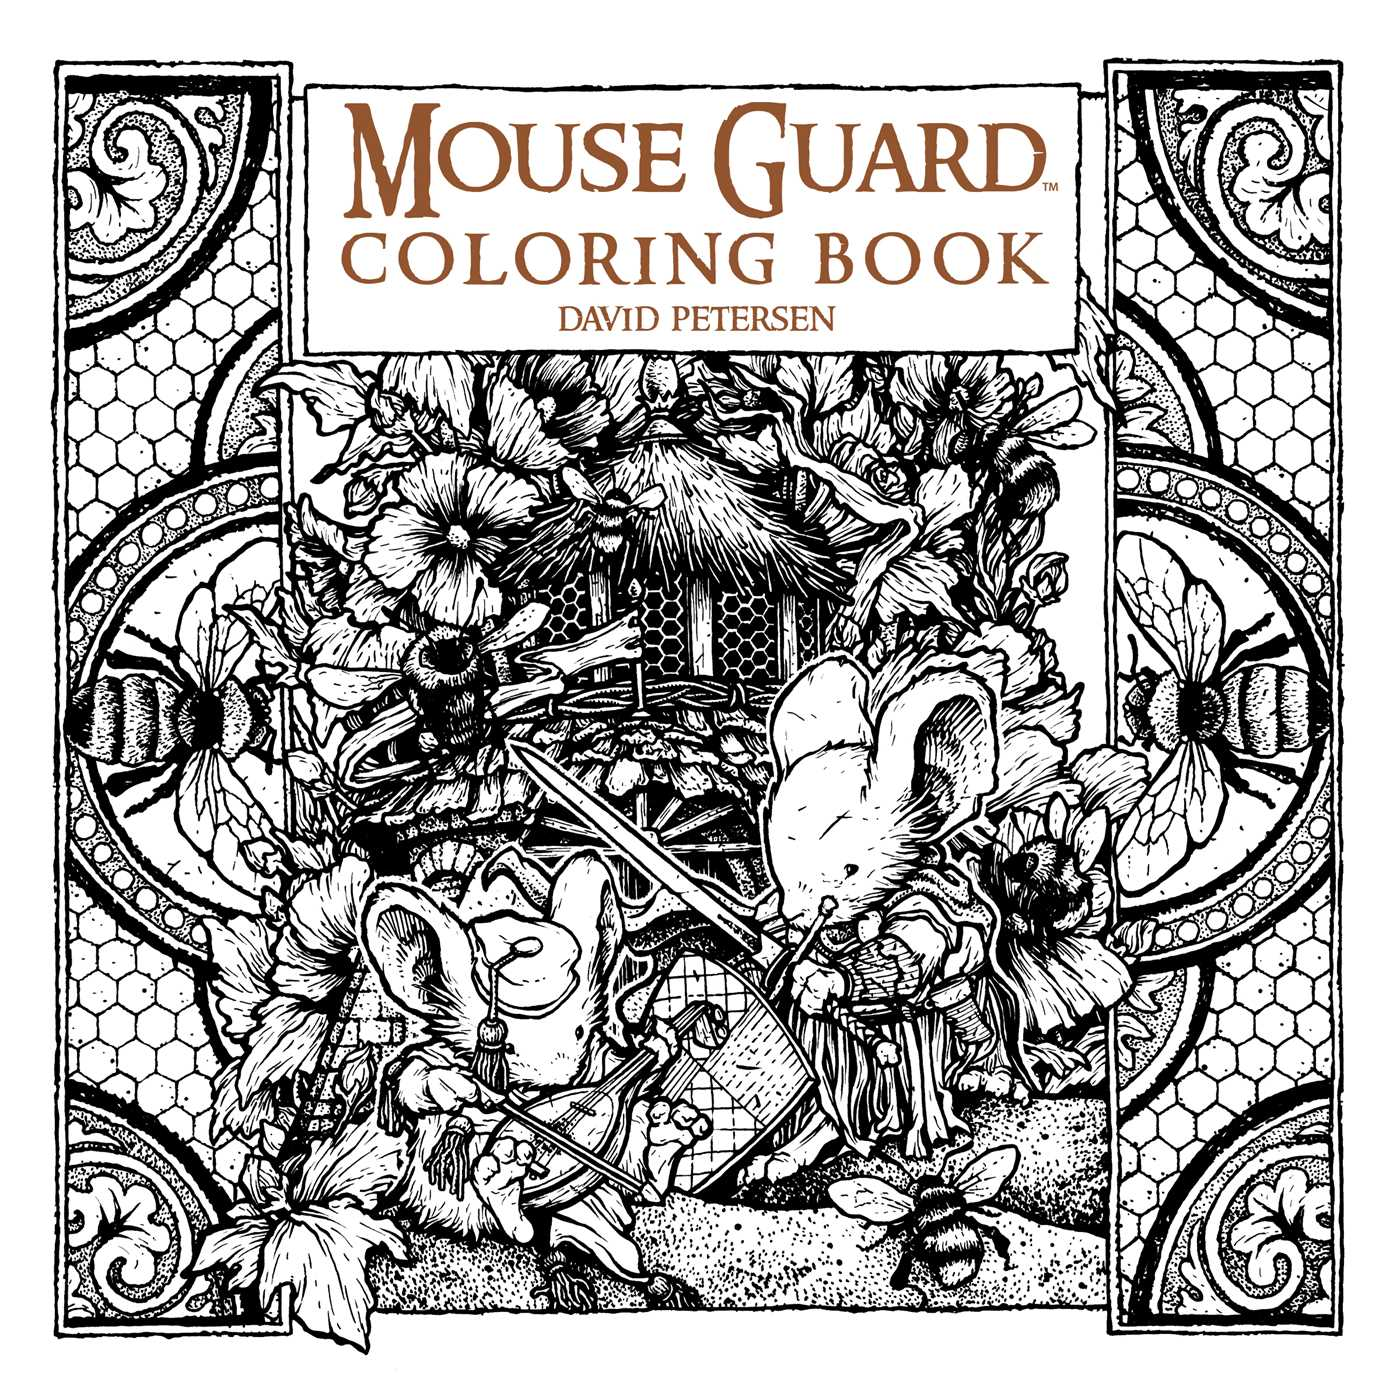 High Resolution Images Book Cover Image Jpg Mouse Guard Coloring